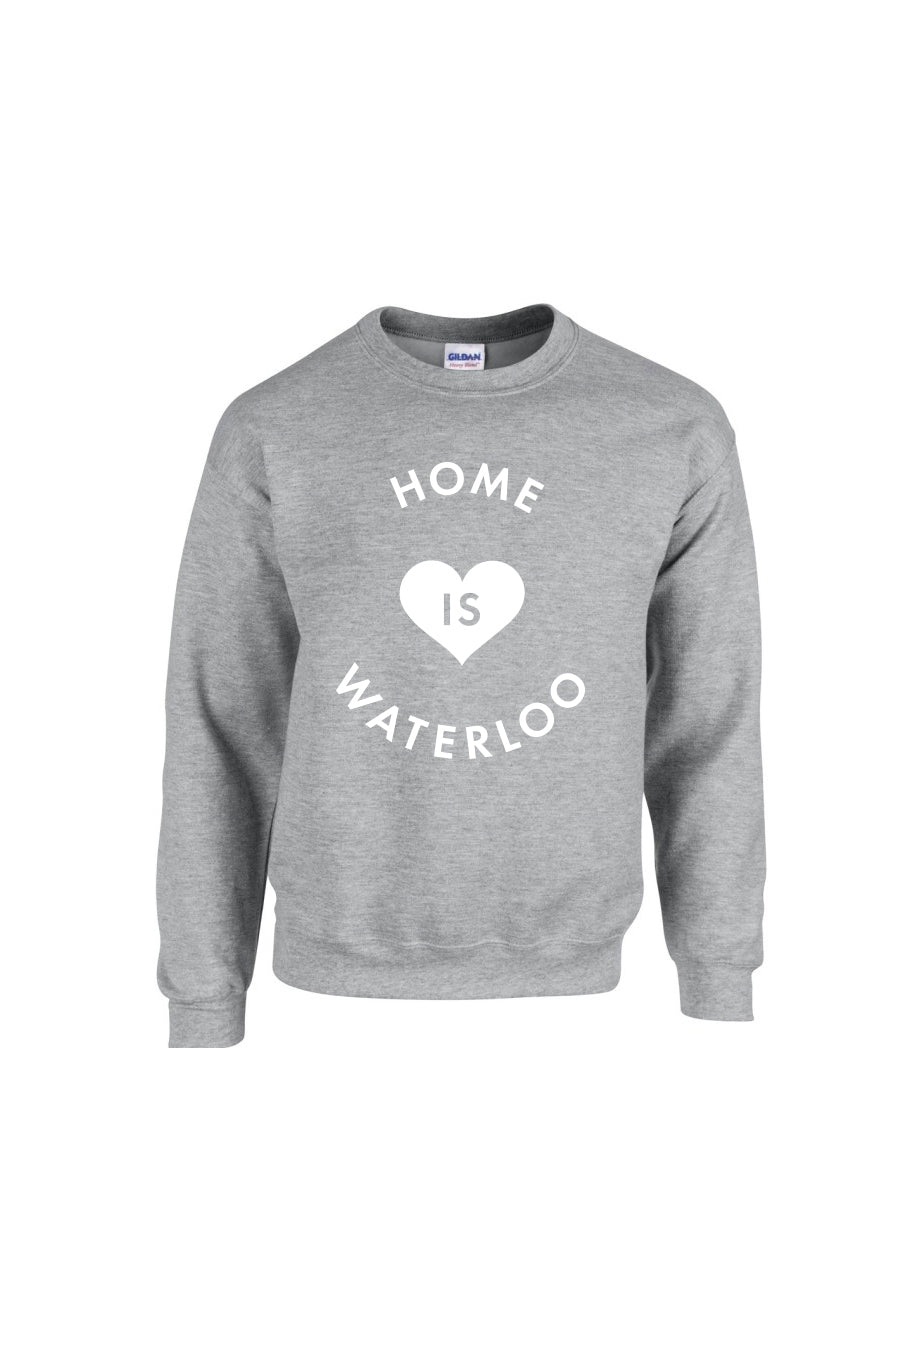 Home is Waterloo Crew Neck - Grey